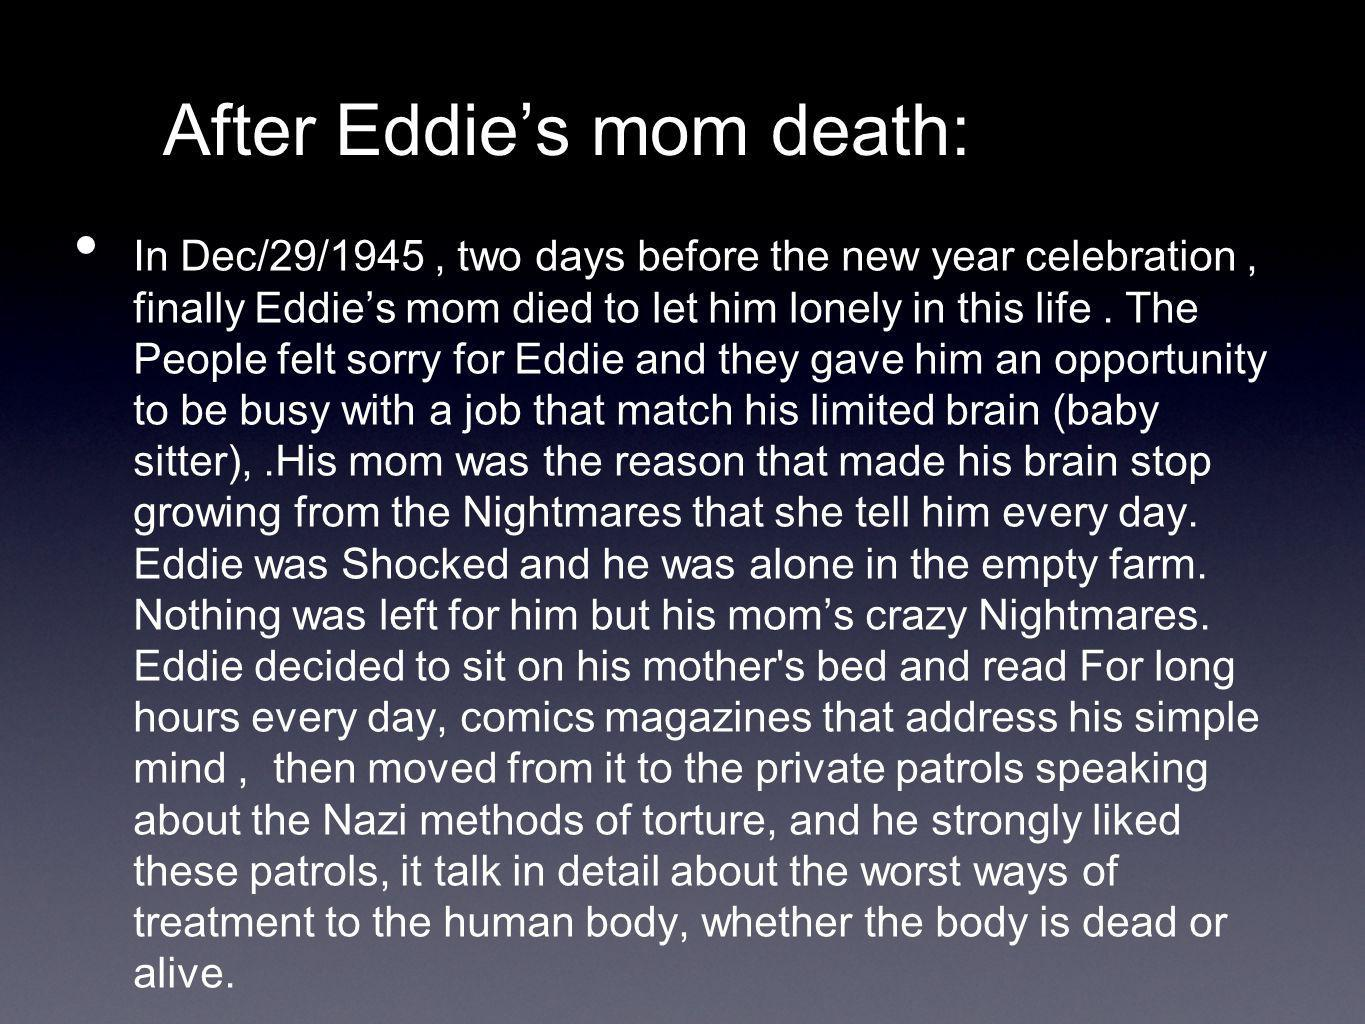 Eddies turning point : After Eddies excitement with the Nazi methods of torture.